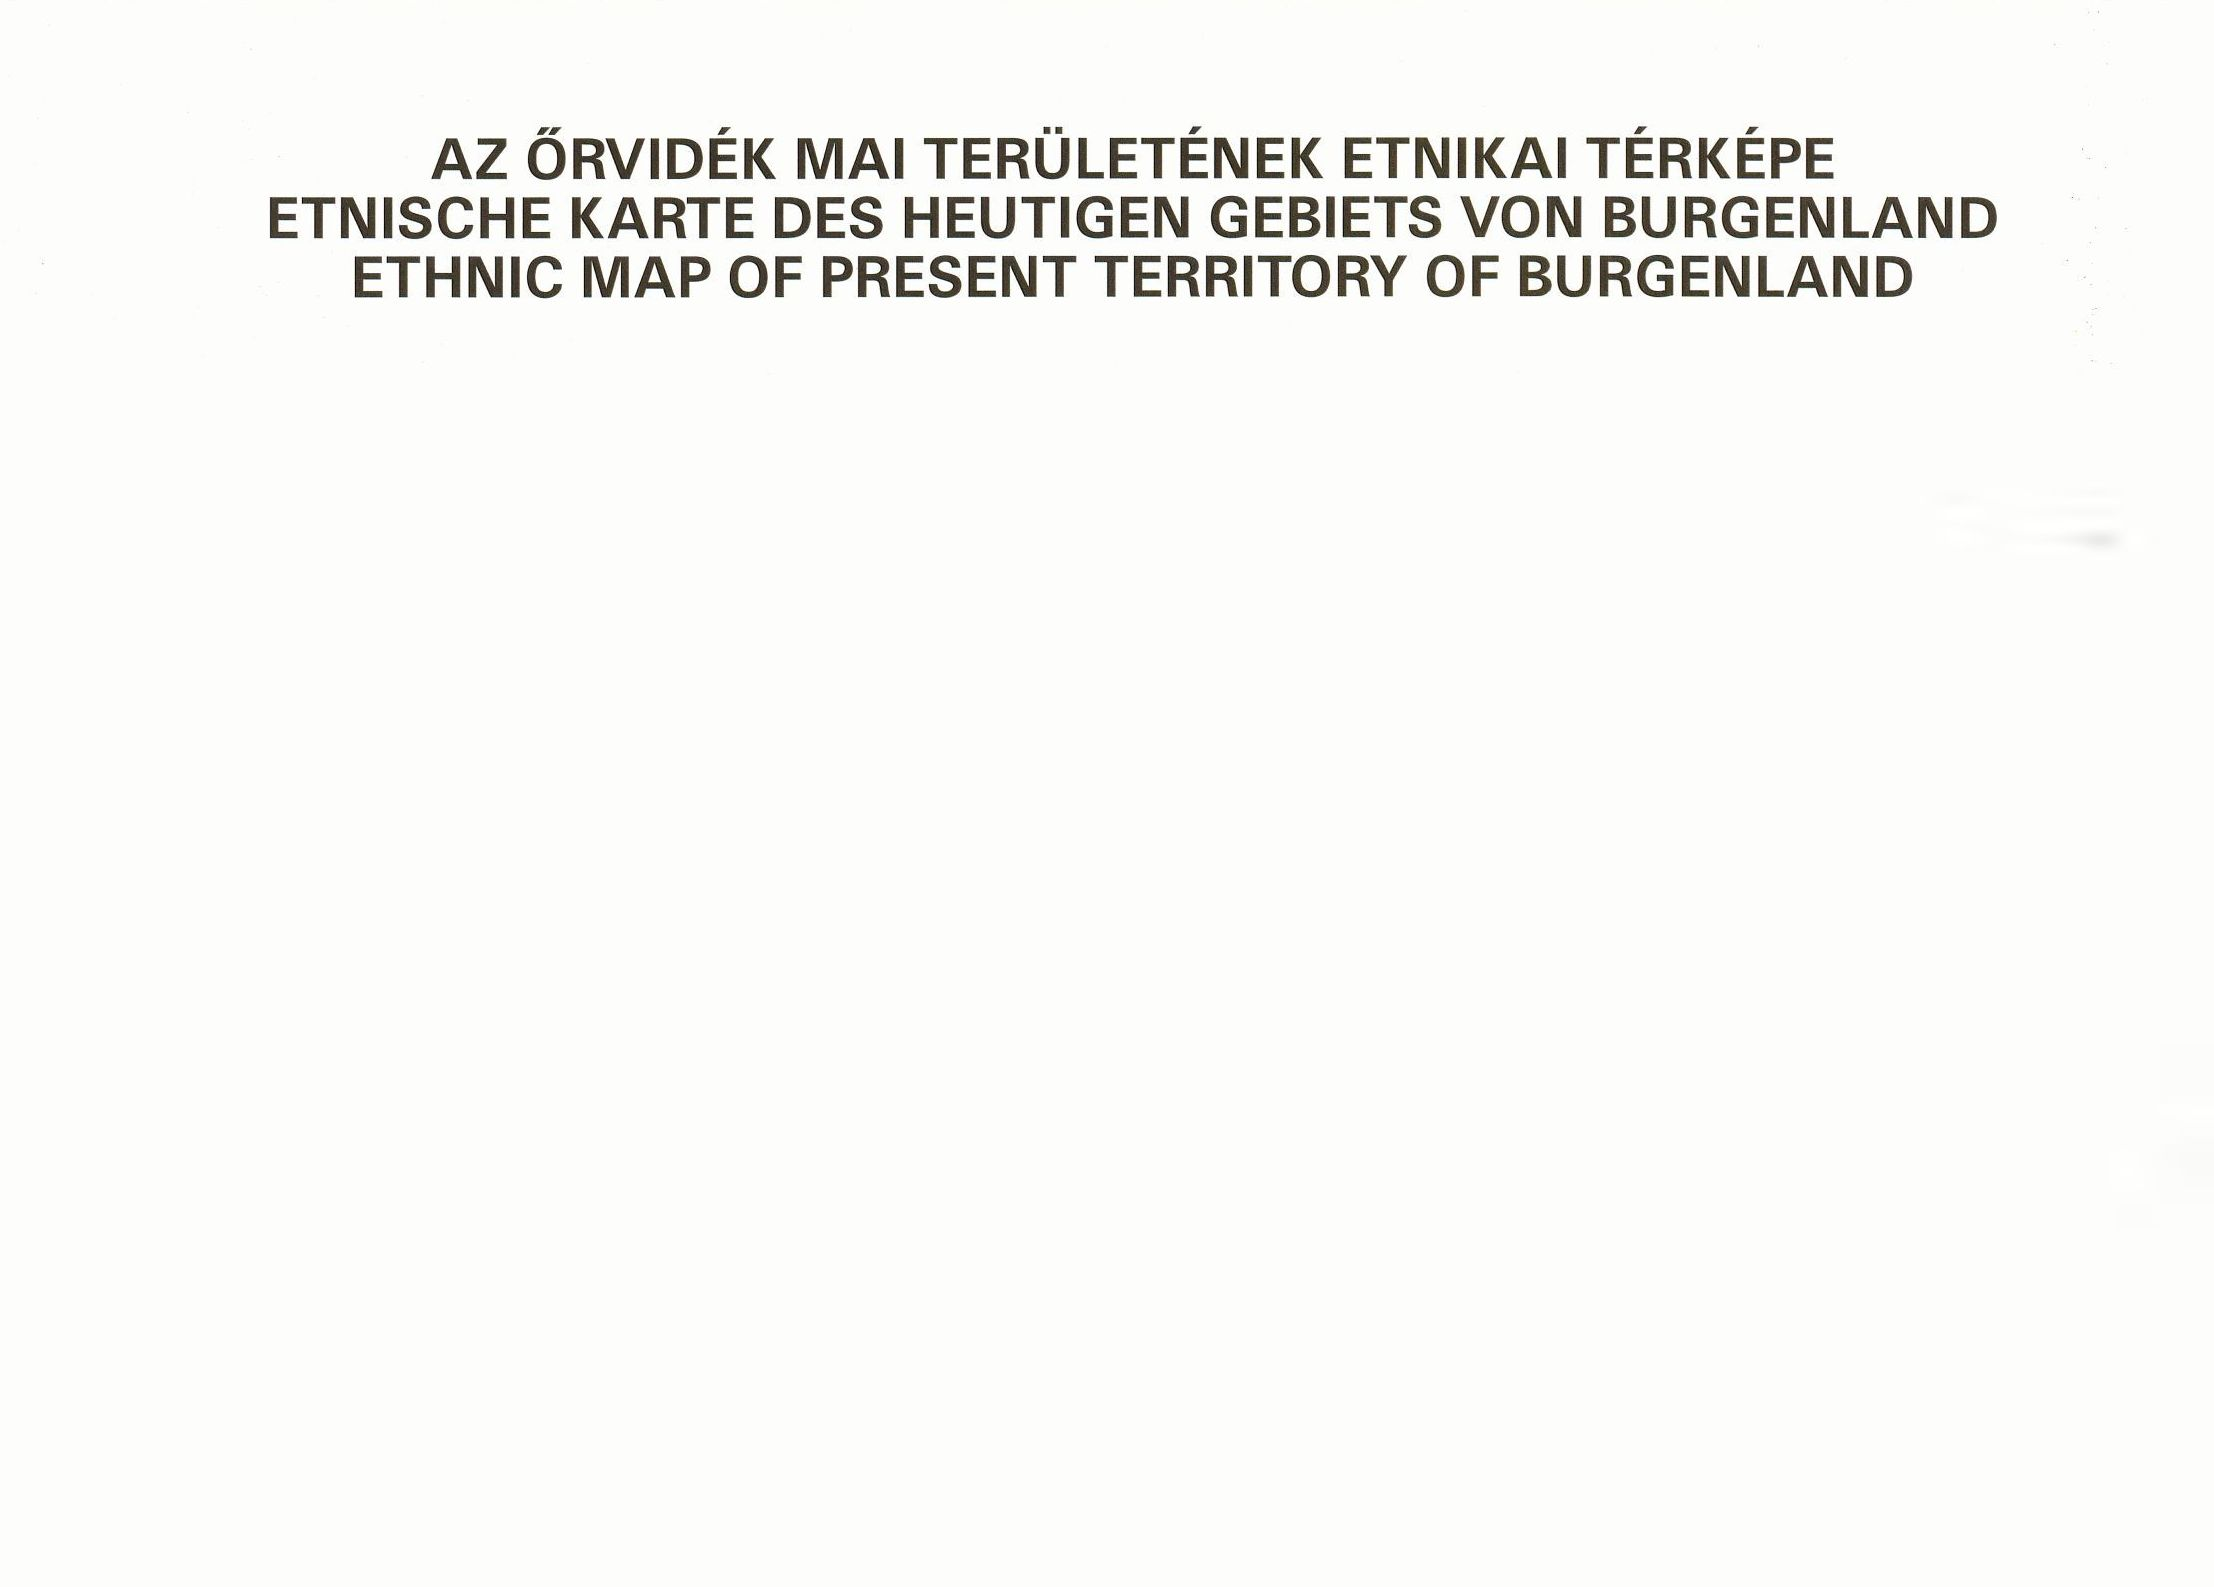 Ethnic map series of the Carpathian basin (former Hungarian territories) Issue No 5 (Burgenland) 2005